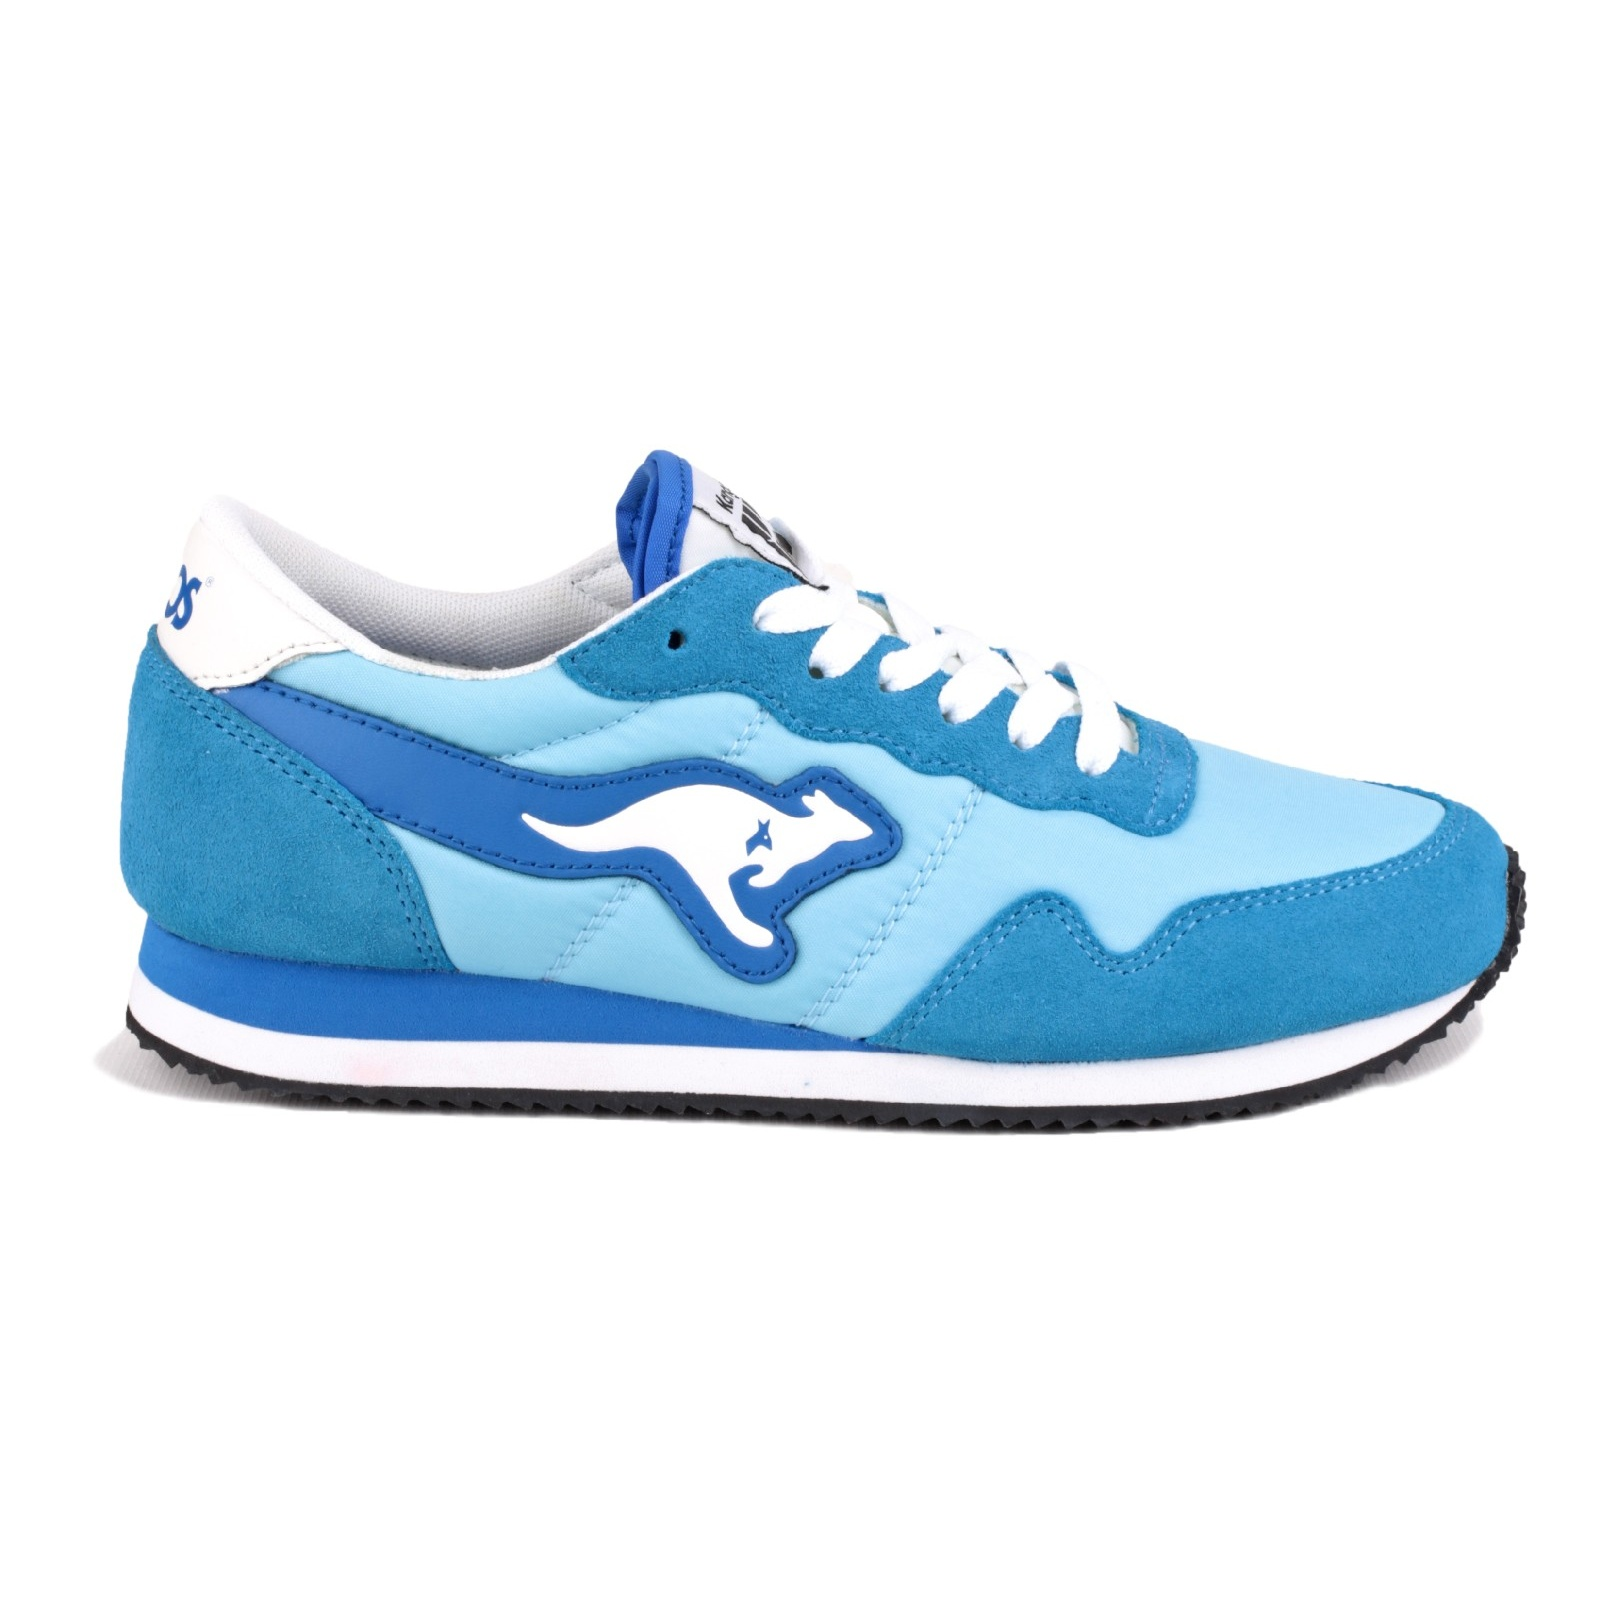 Model American Sneaker Brand KangaROOS Grew Famous In The 80s For Its Shoes With Zippered Pockets That Could Hold  There Are A Total Of 10 New Womens And Mens Styles, Including Variations Of Crocs That